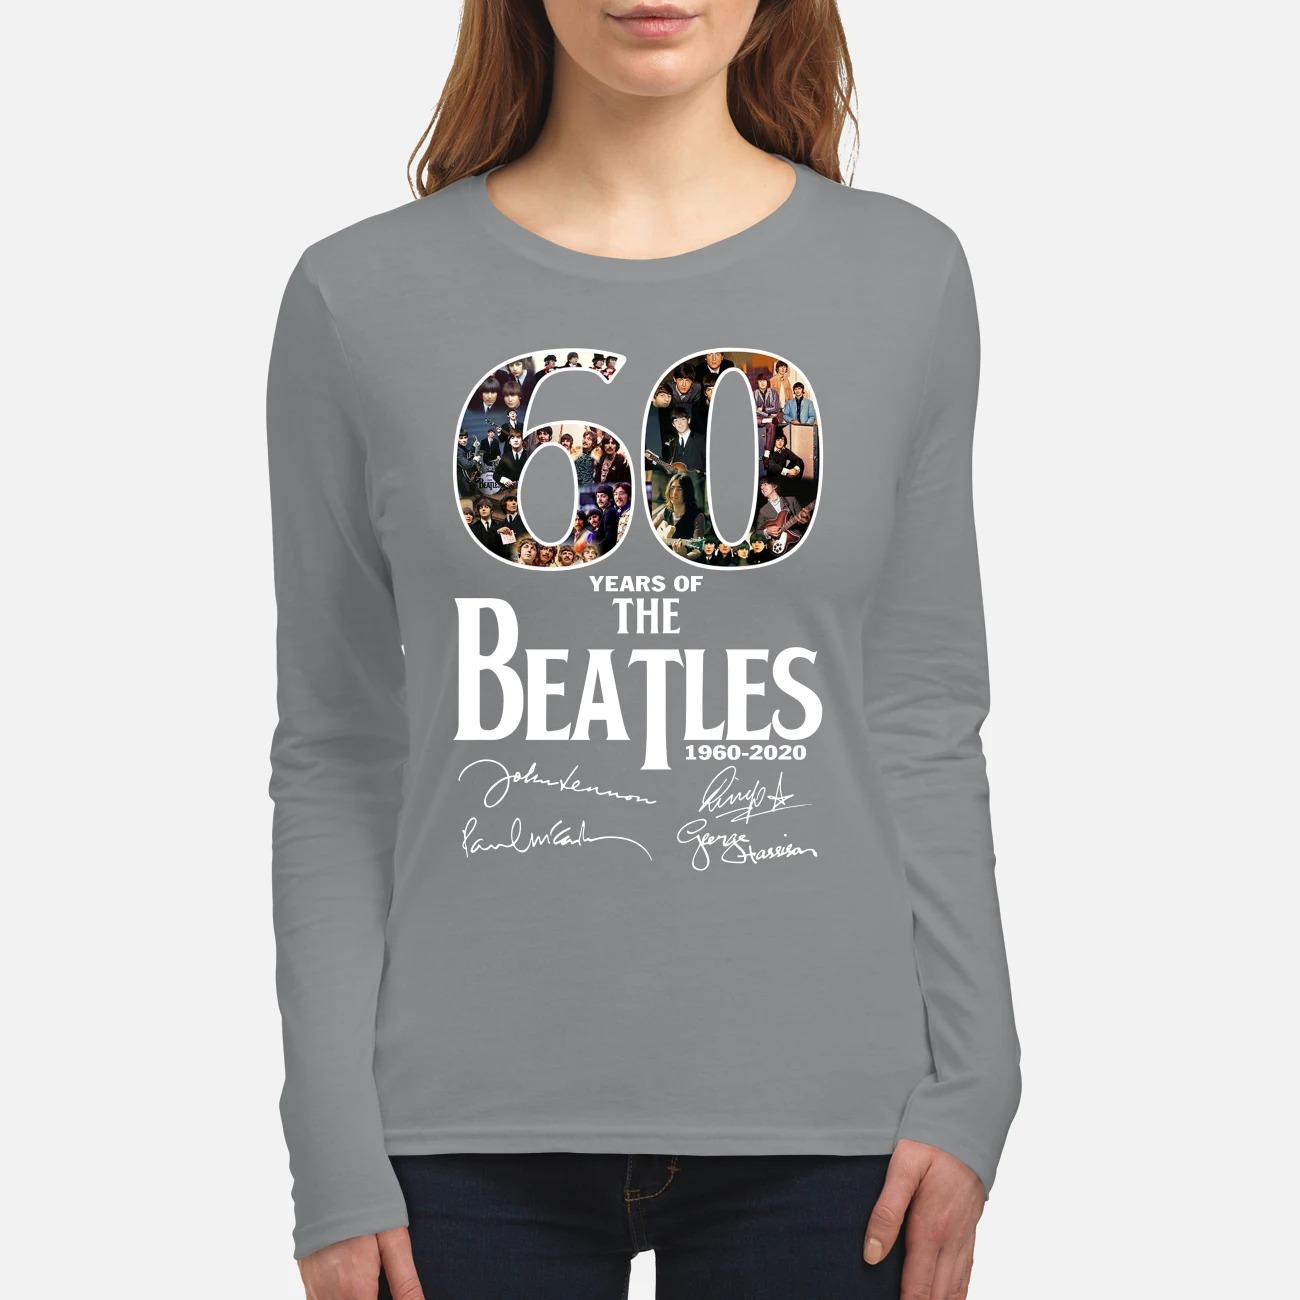 The Beatles 60 years women's long sleeved shirt